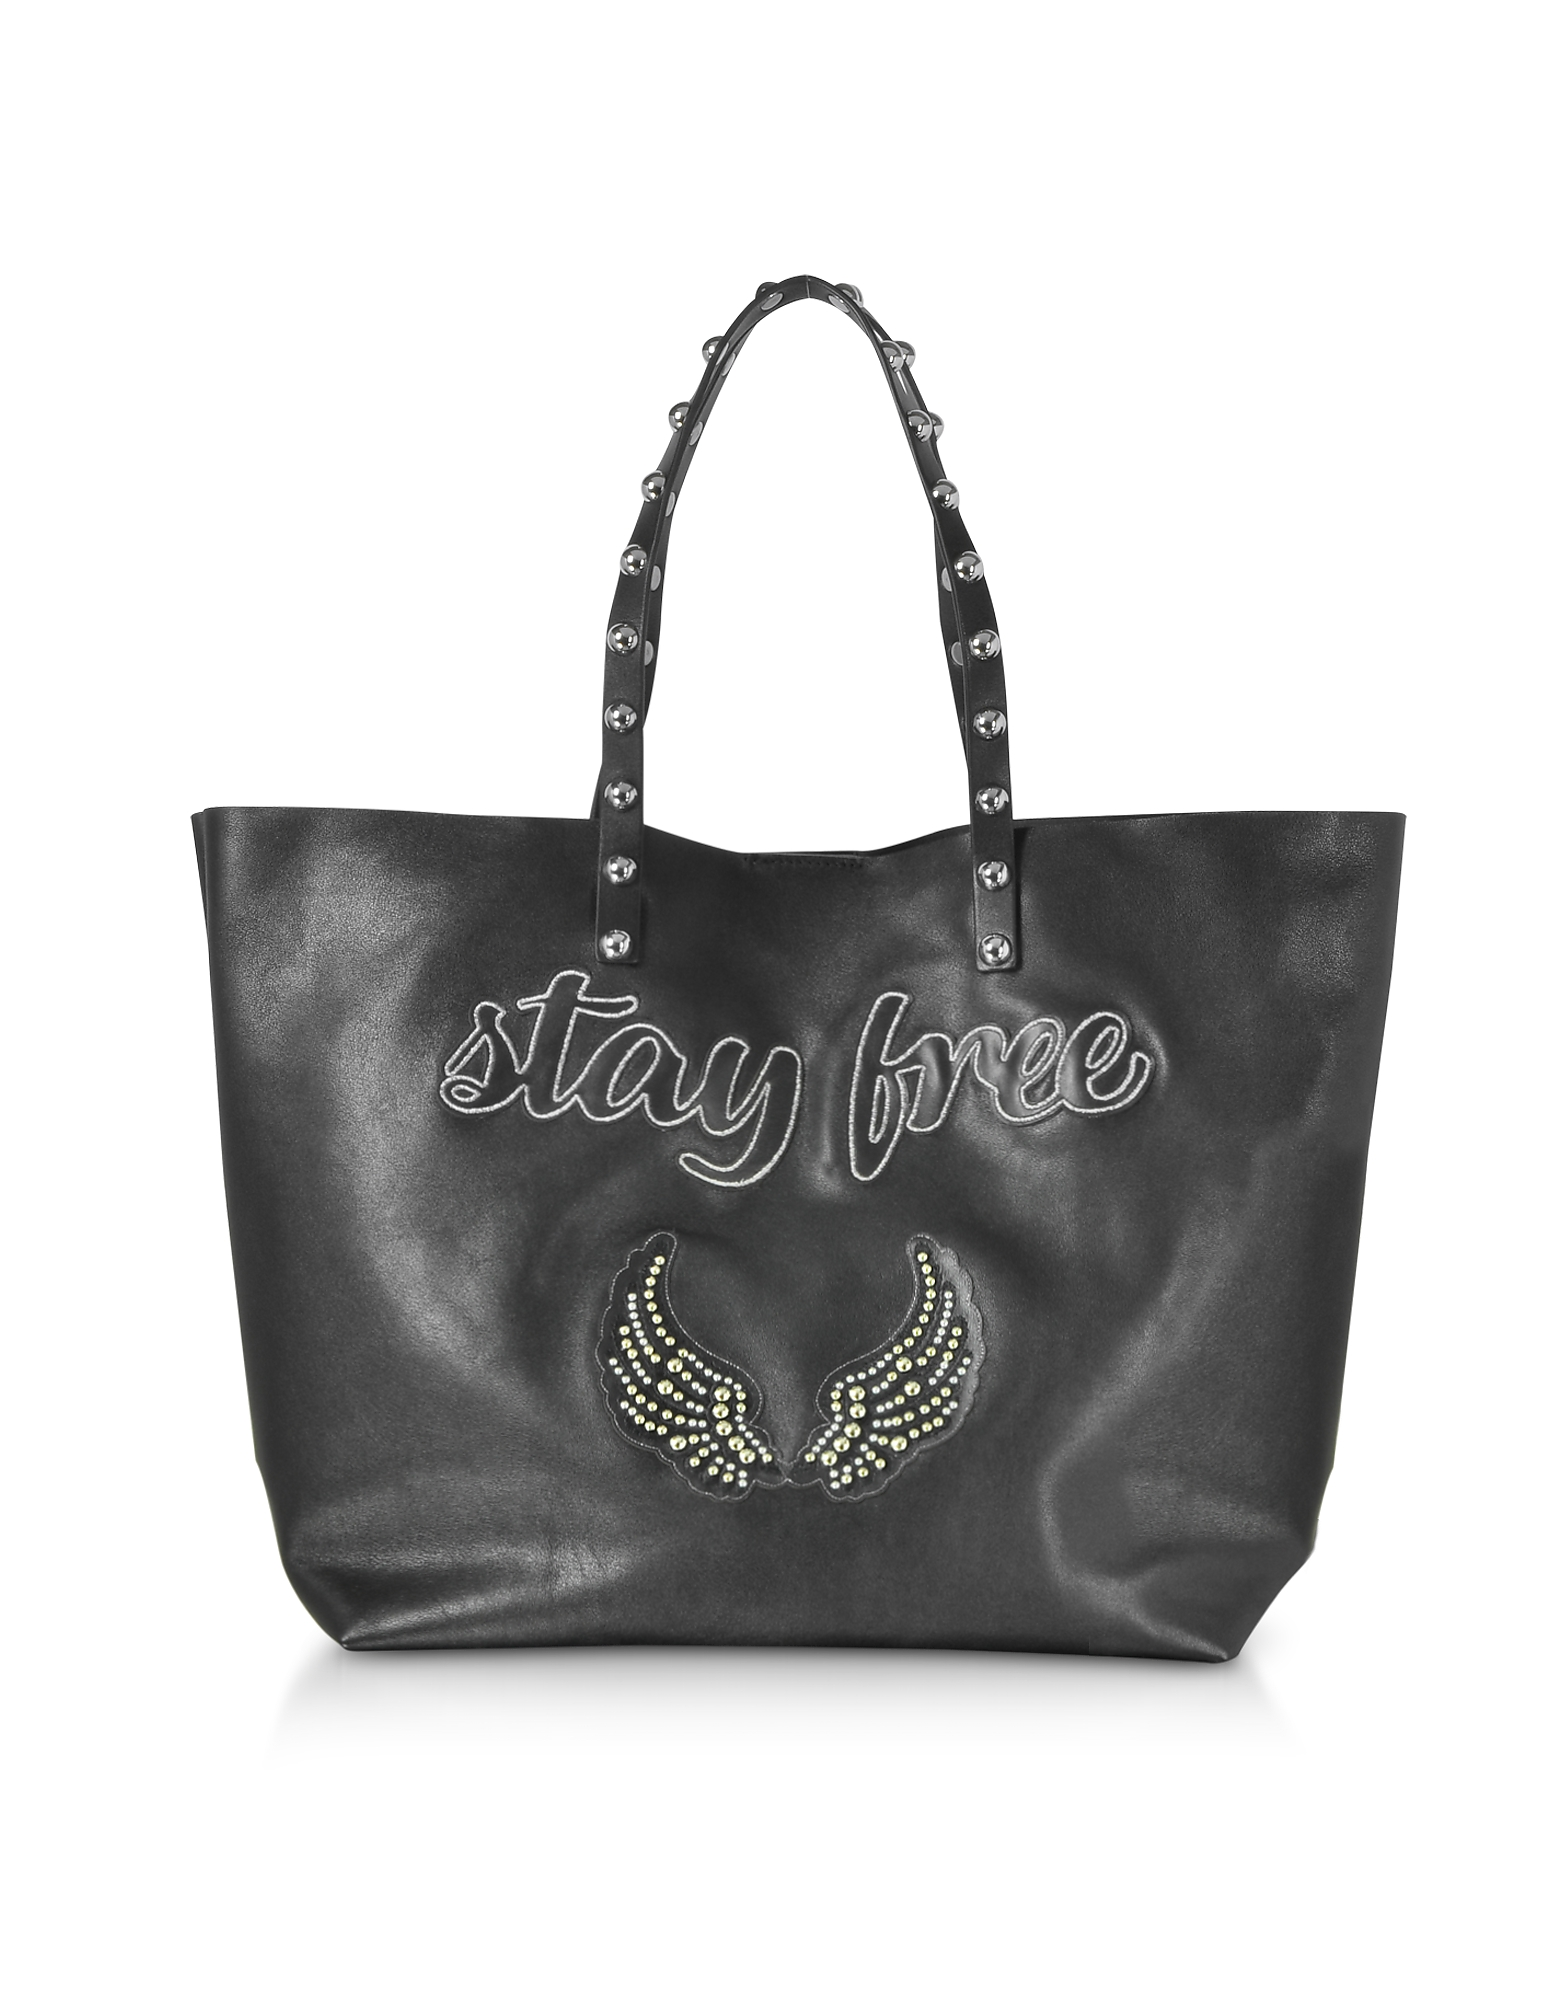 RED Valentino Handbags, Stay Free Black Leather Tote